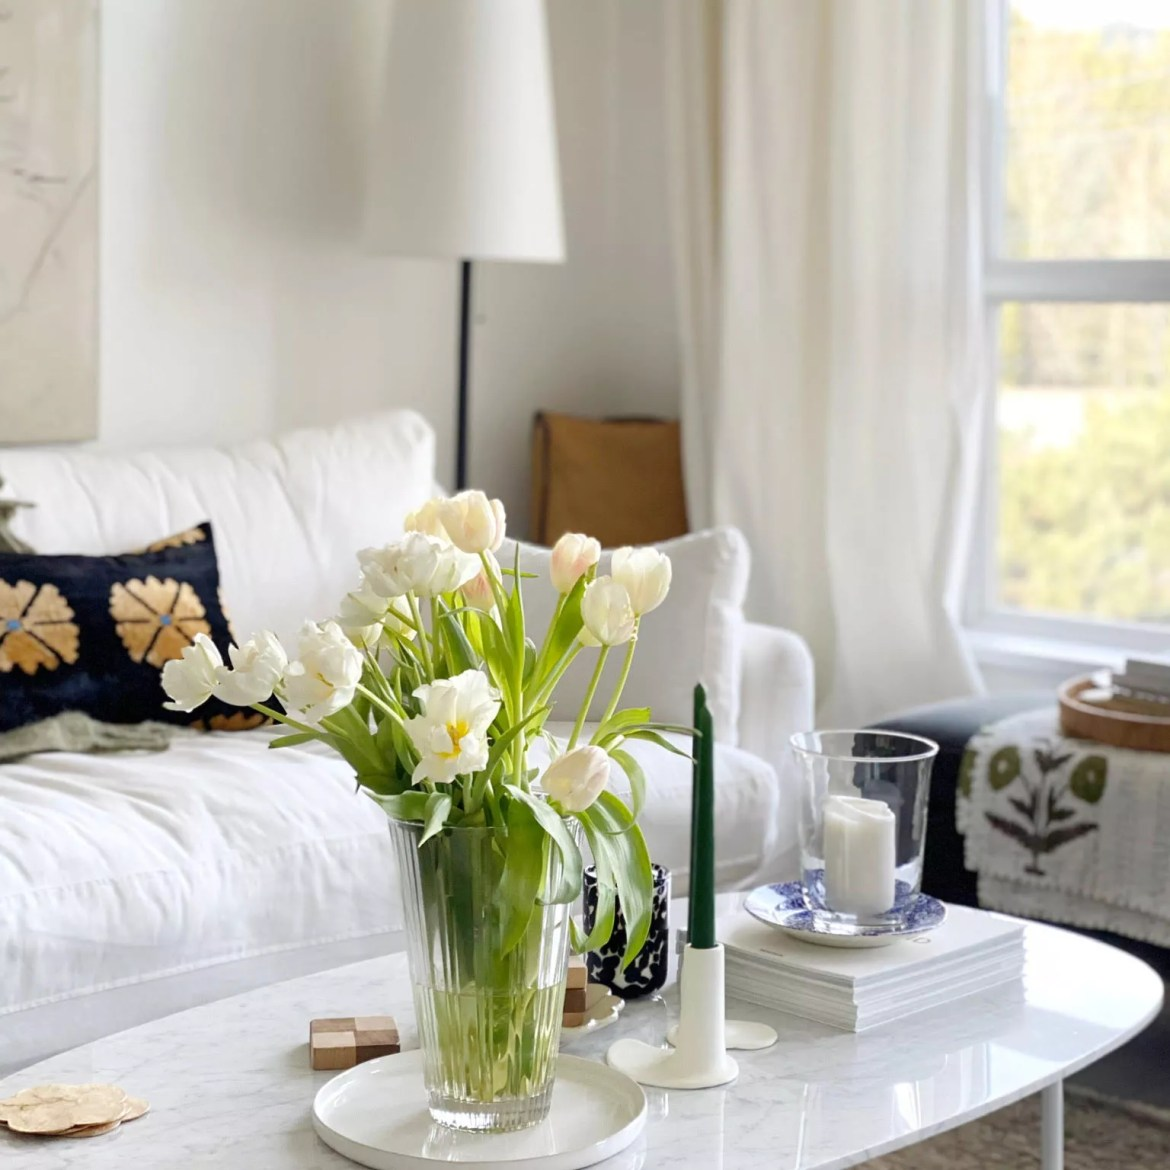 Sunny living space with fresh tulips.